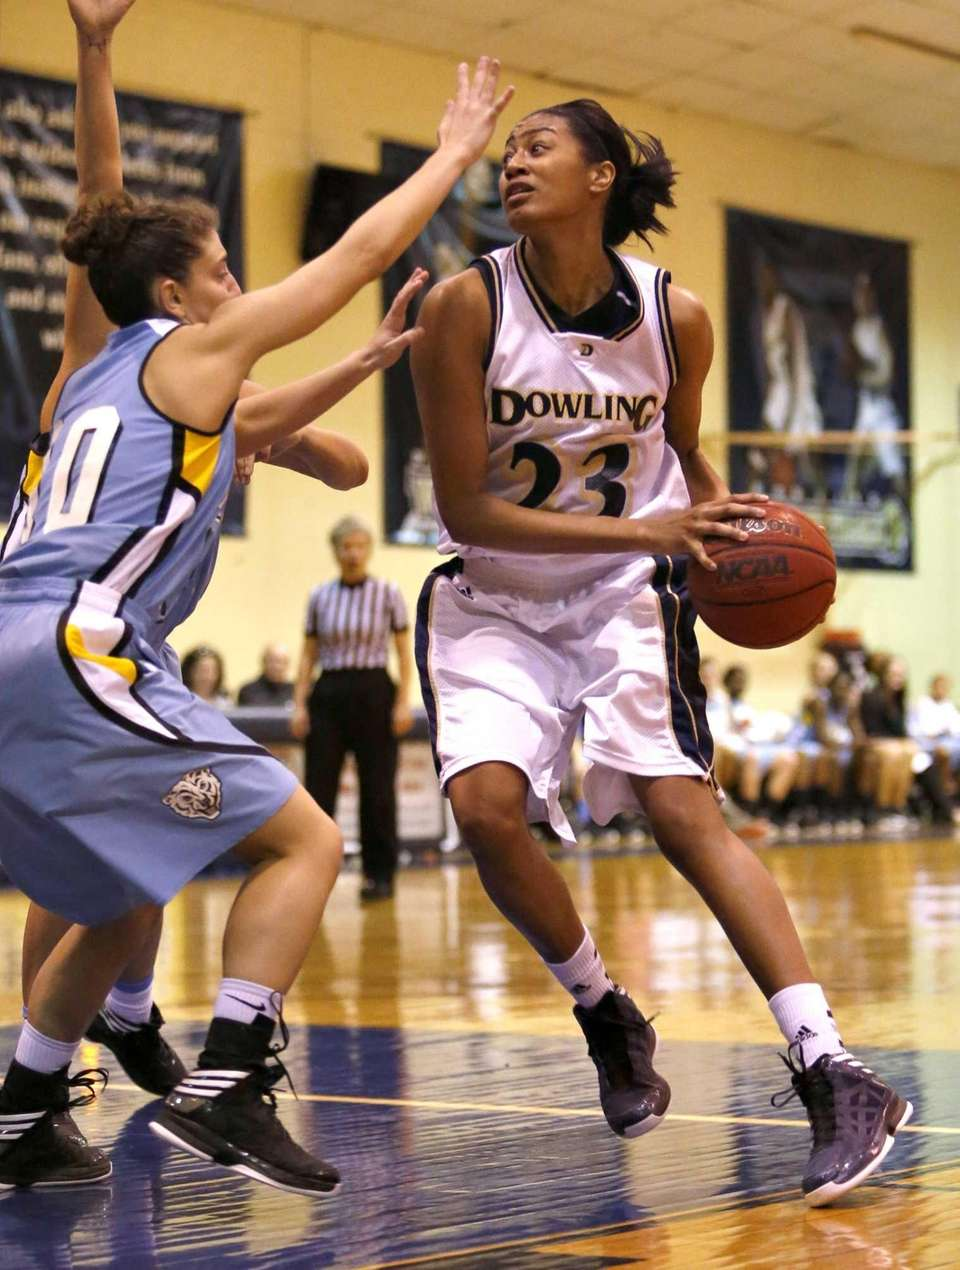 Dowling's Danielle Wilson (23) turns into the paint